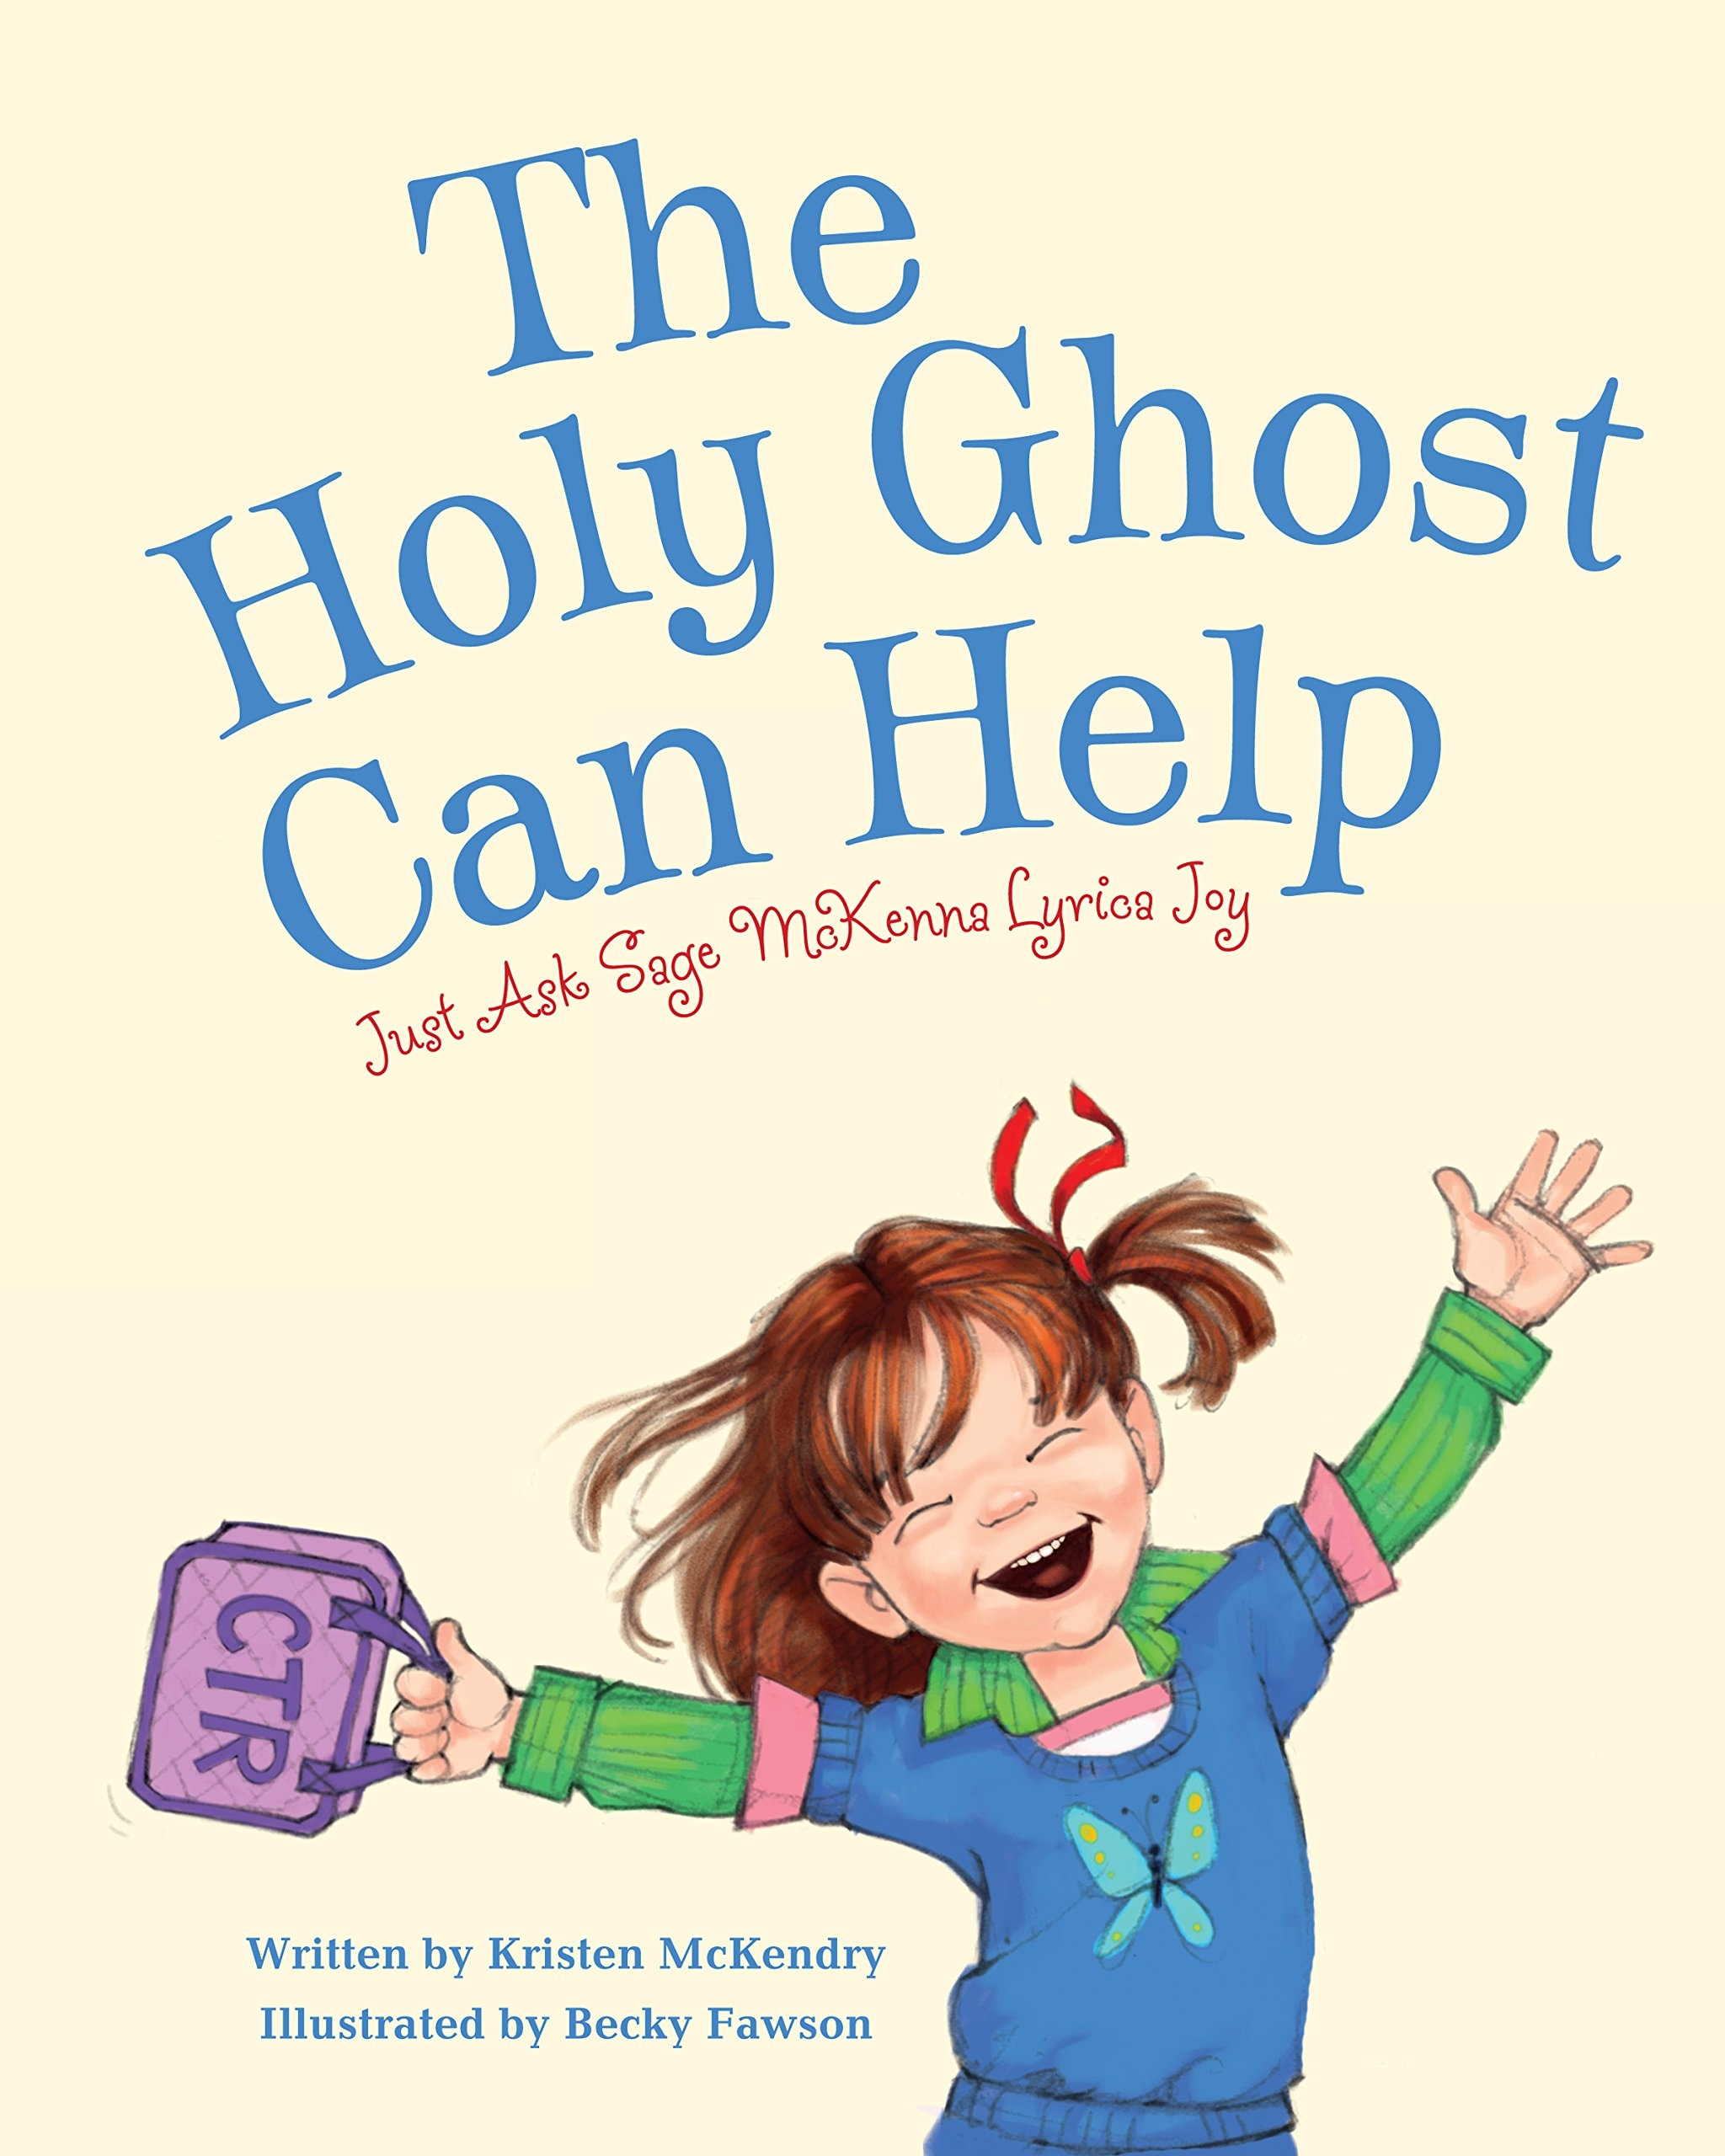 The Holy Ghost Can Help  Just Ask Sage Mckenna Lyrica Joy, Kristen McKendry and Becky Fawson